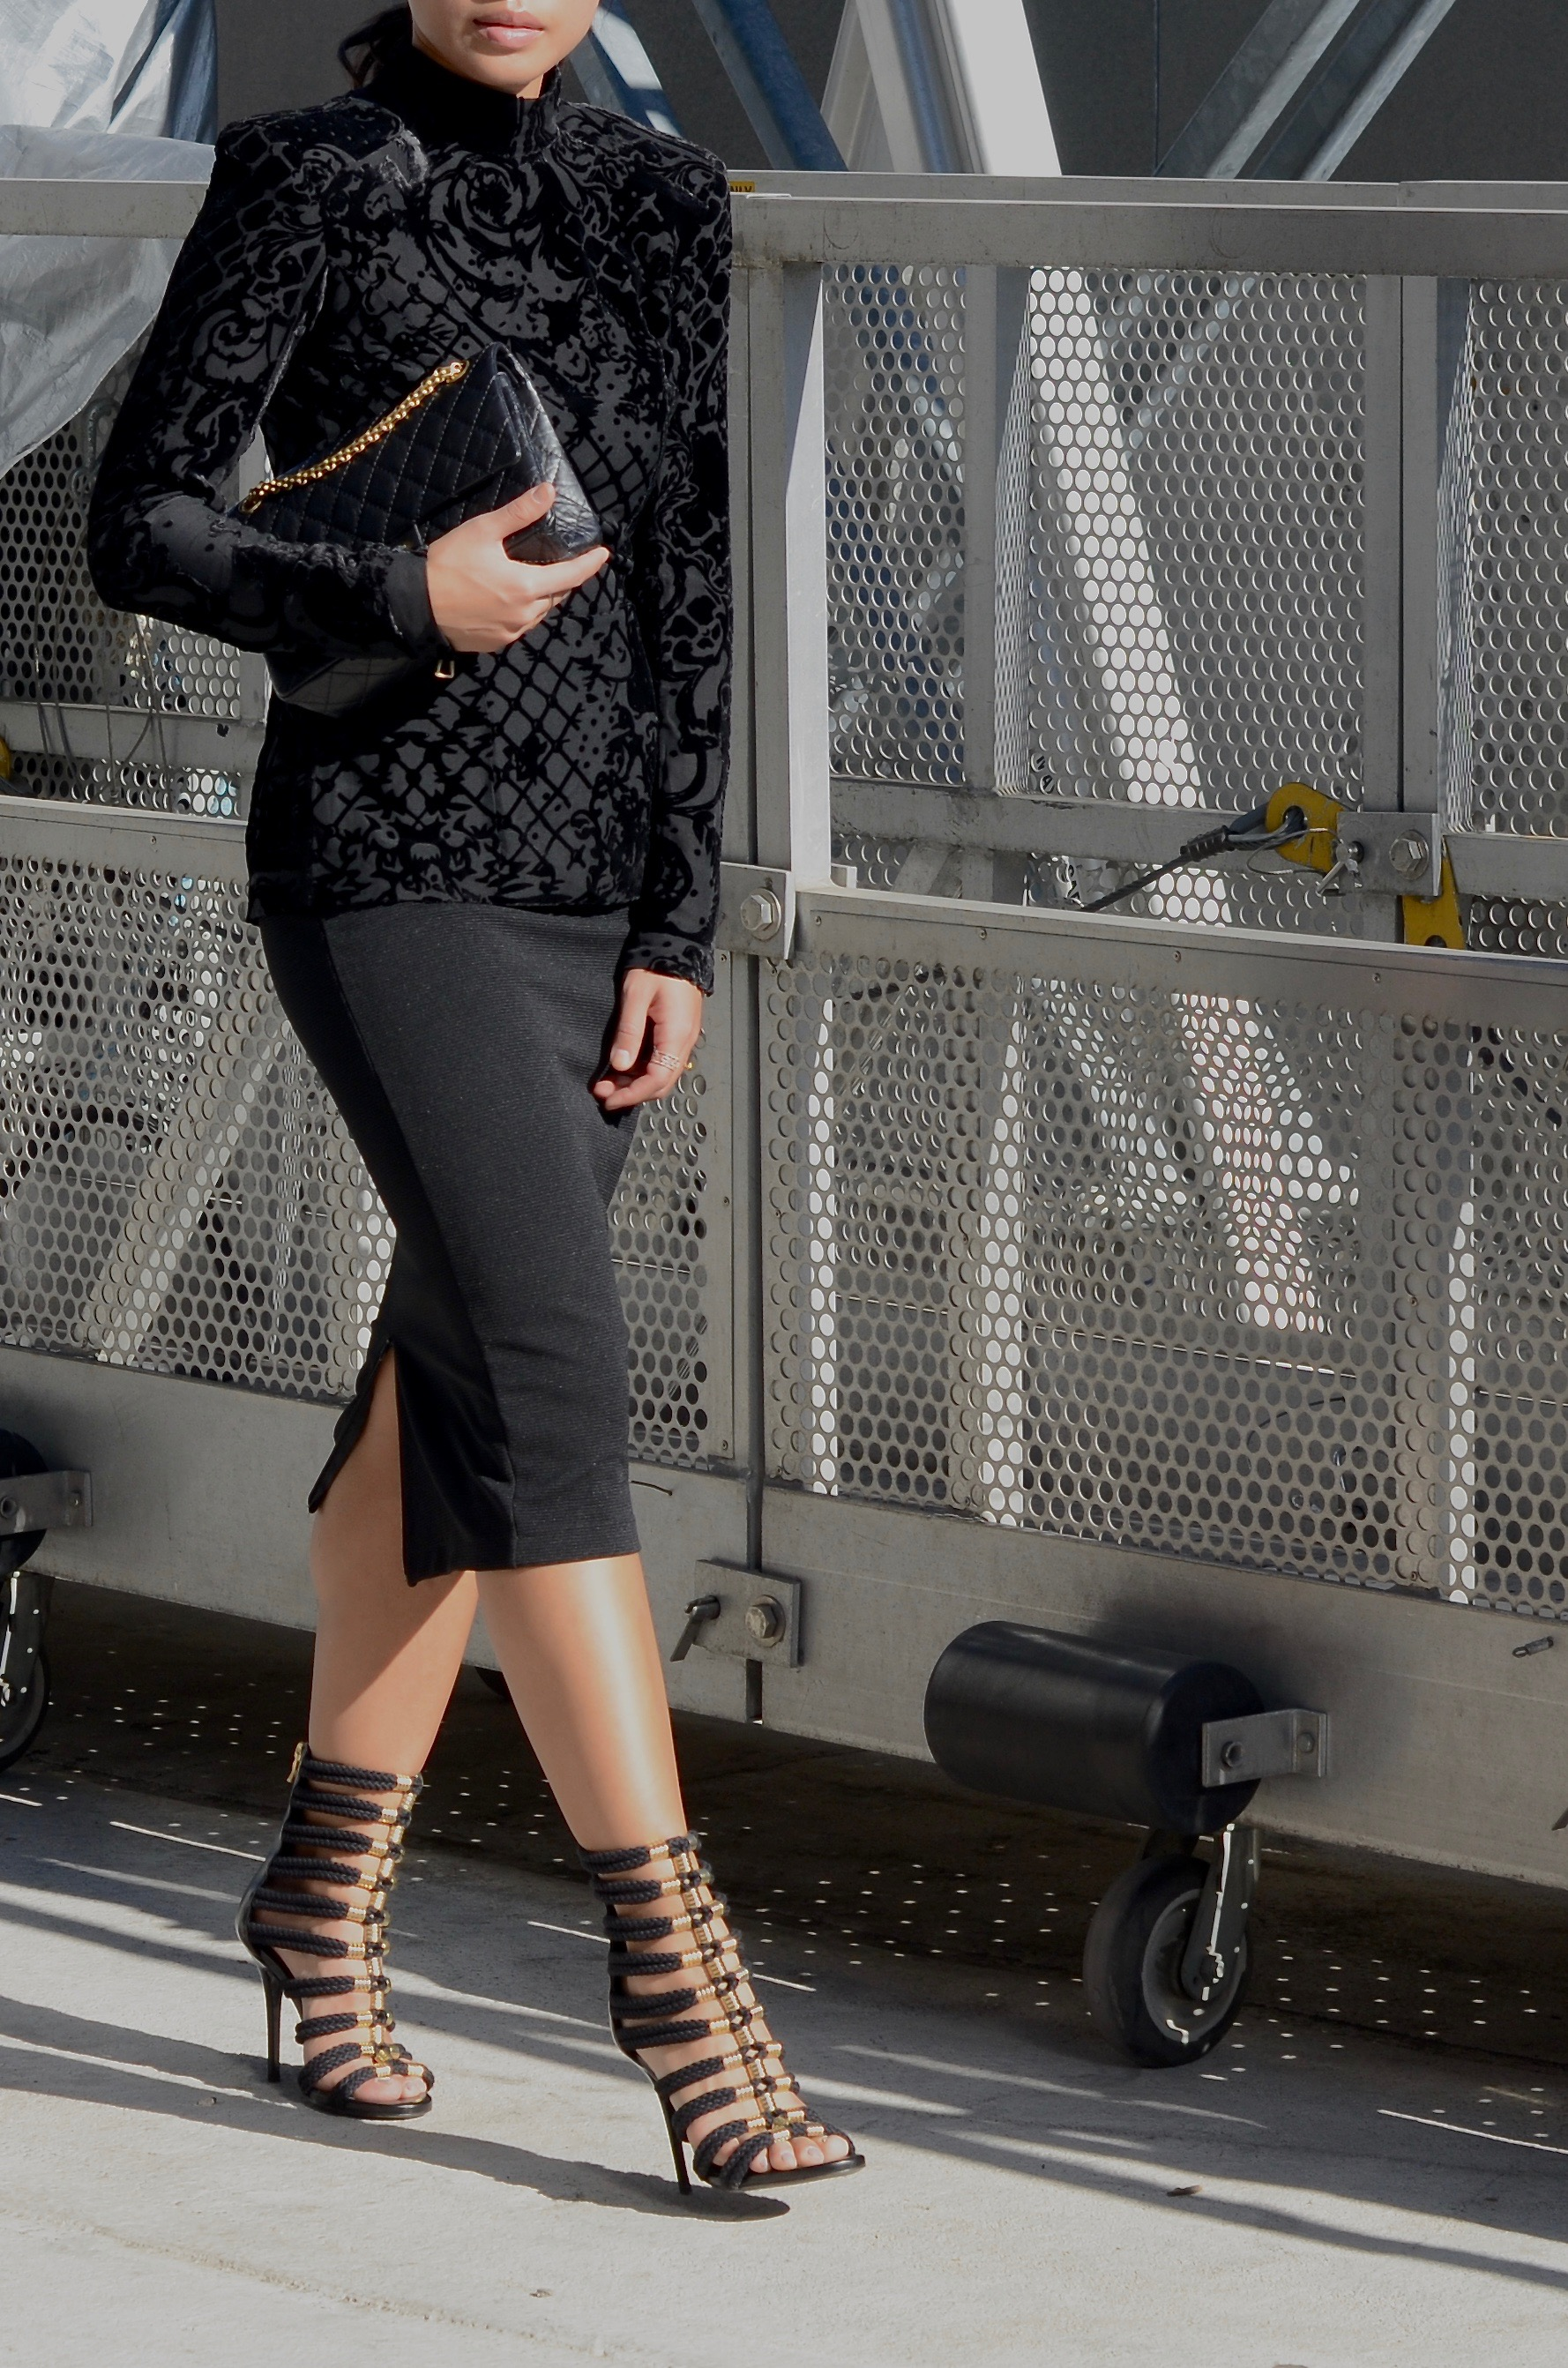 Just Goh With It-Outfit-Black-HM-Balmain-velvet-Turtleneck-gold-strappy-sandals-skirt-chanel-5.jpg